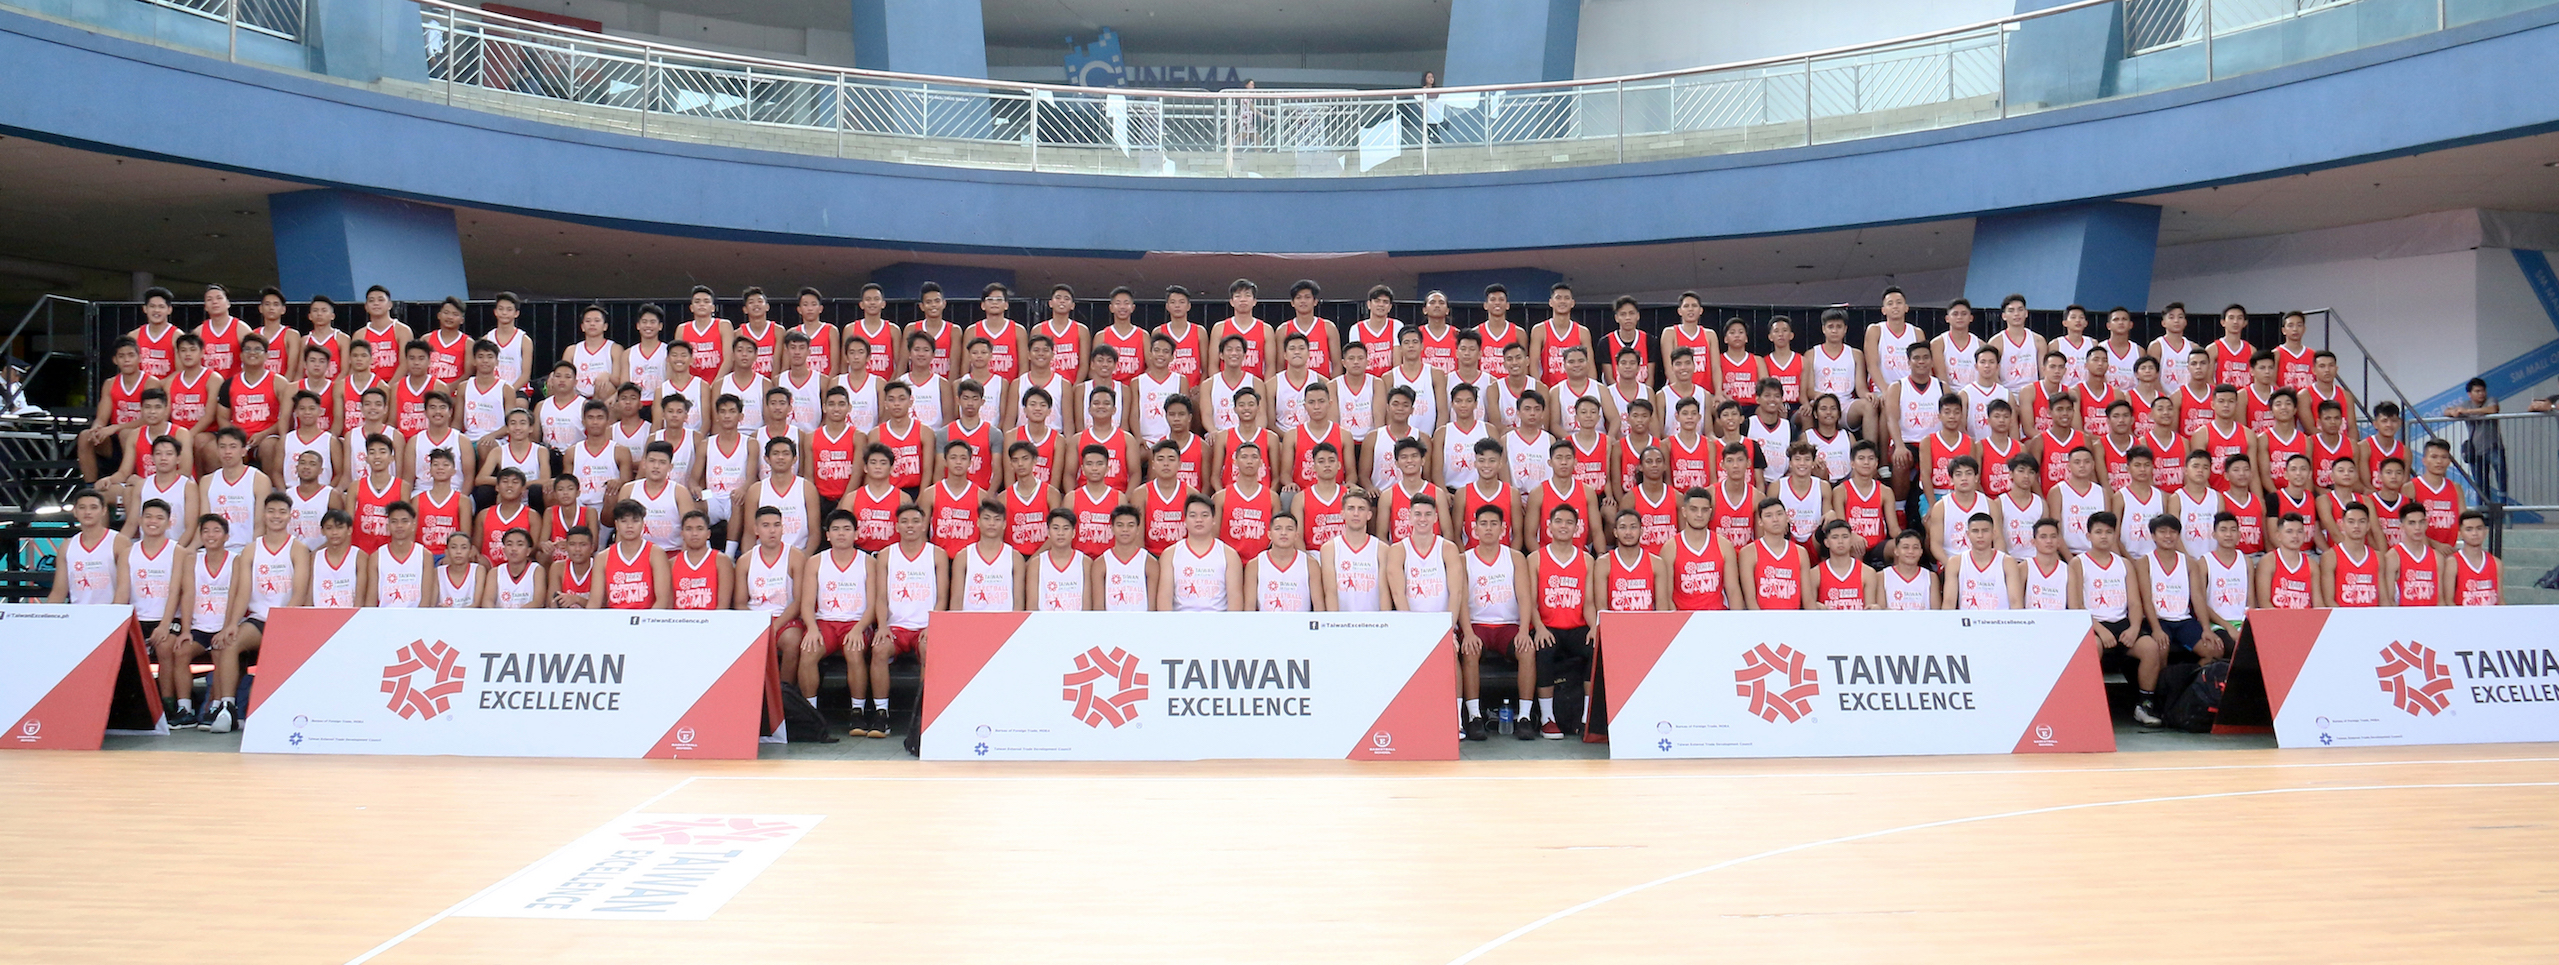 Taiwan Excellence Combines Basketball and Innovation